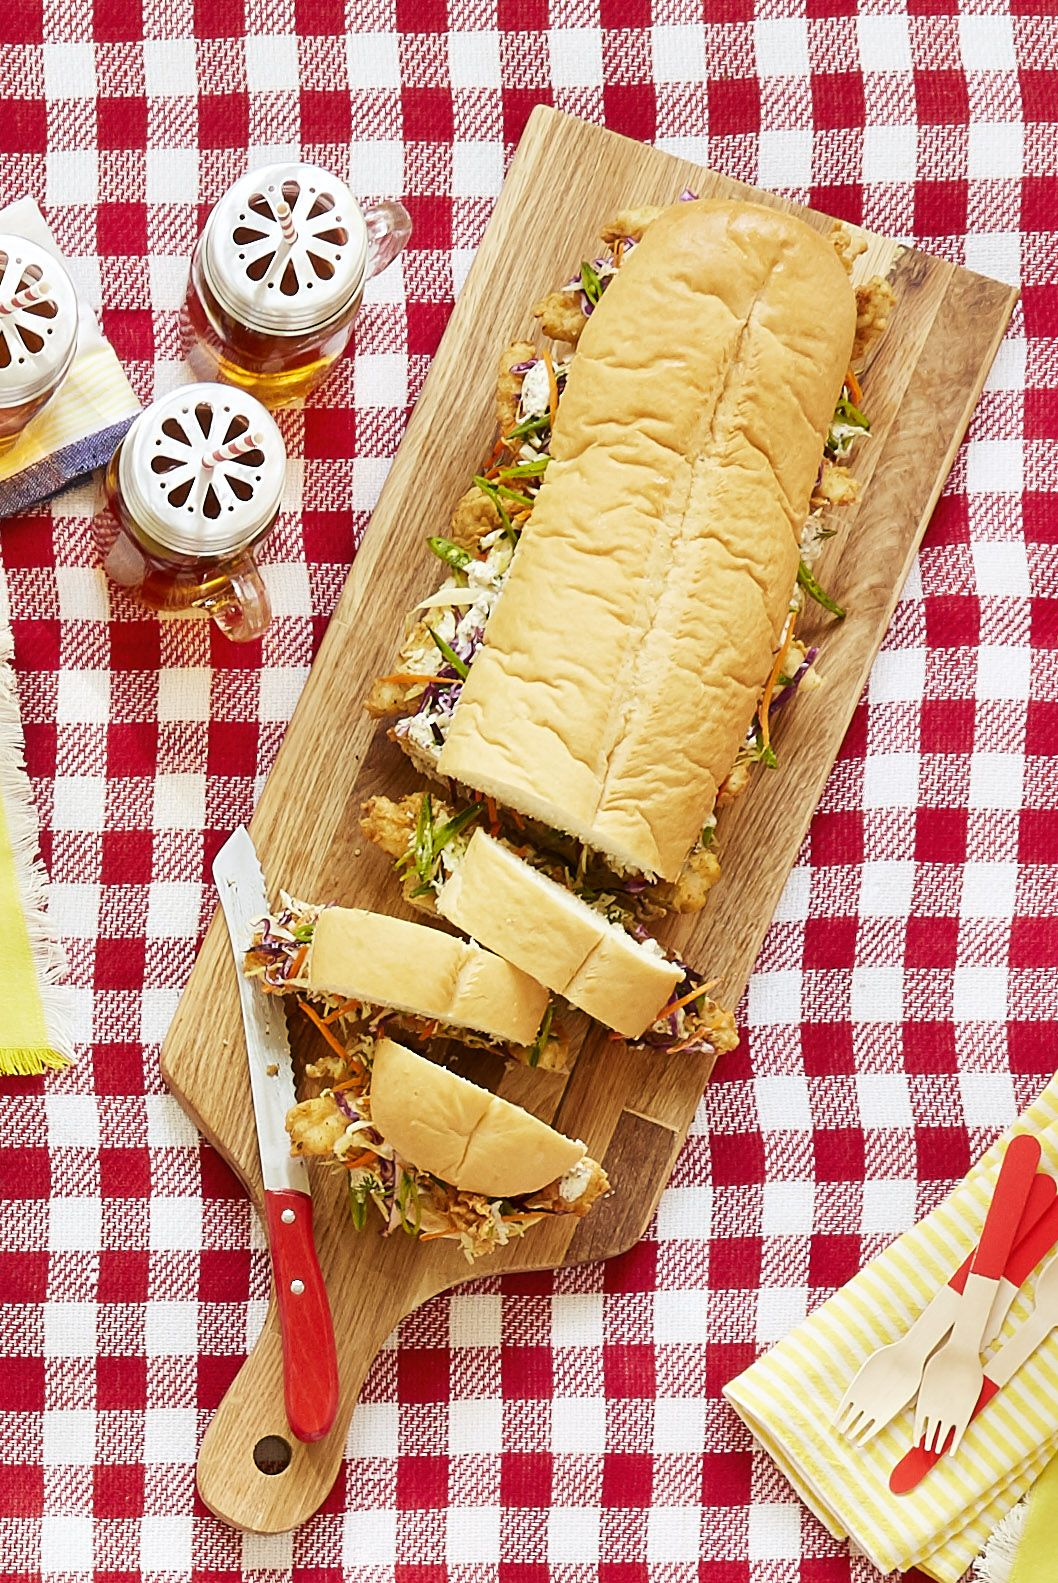 68 summer picnic recipes easy food ideas for a summer picnic forumfinder Images